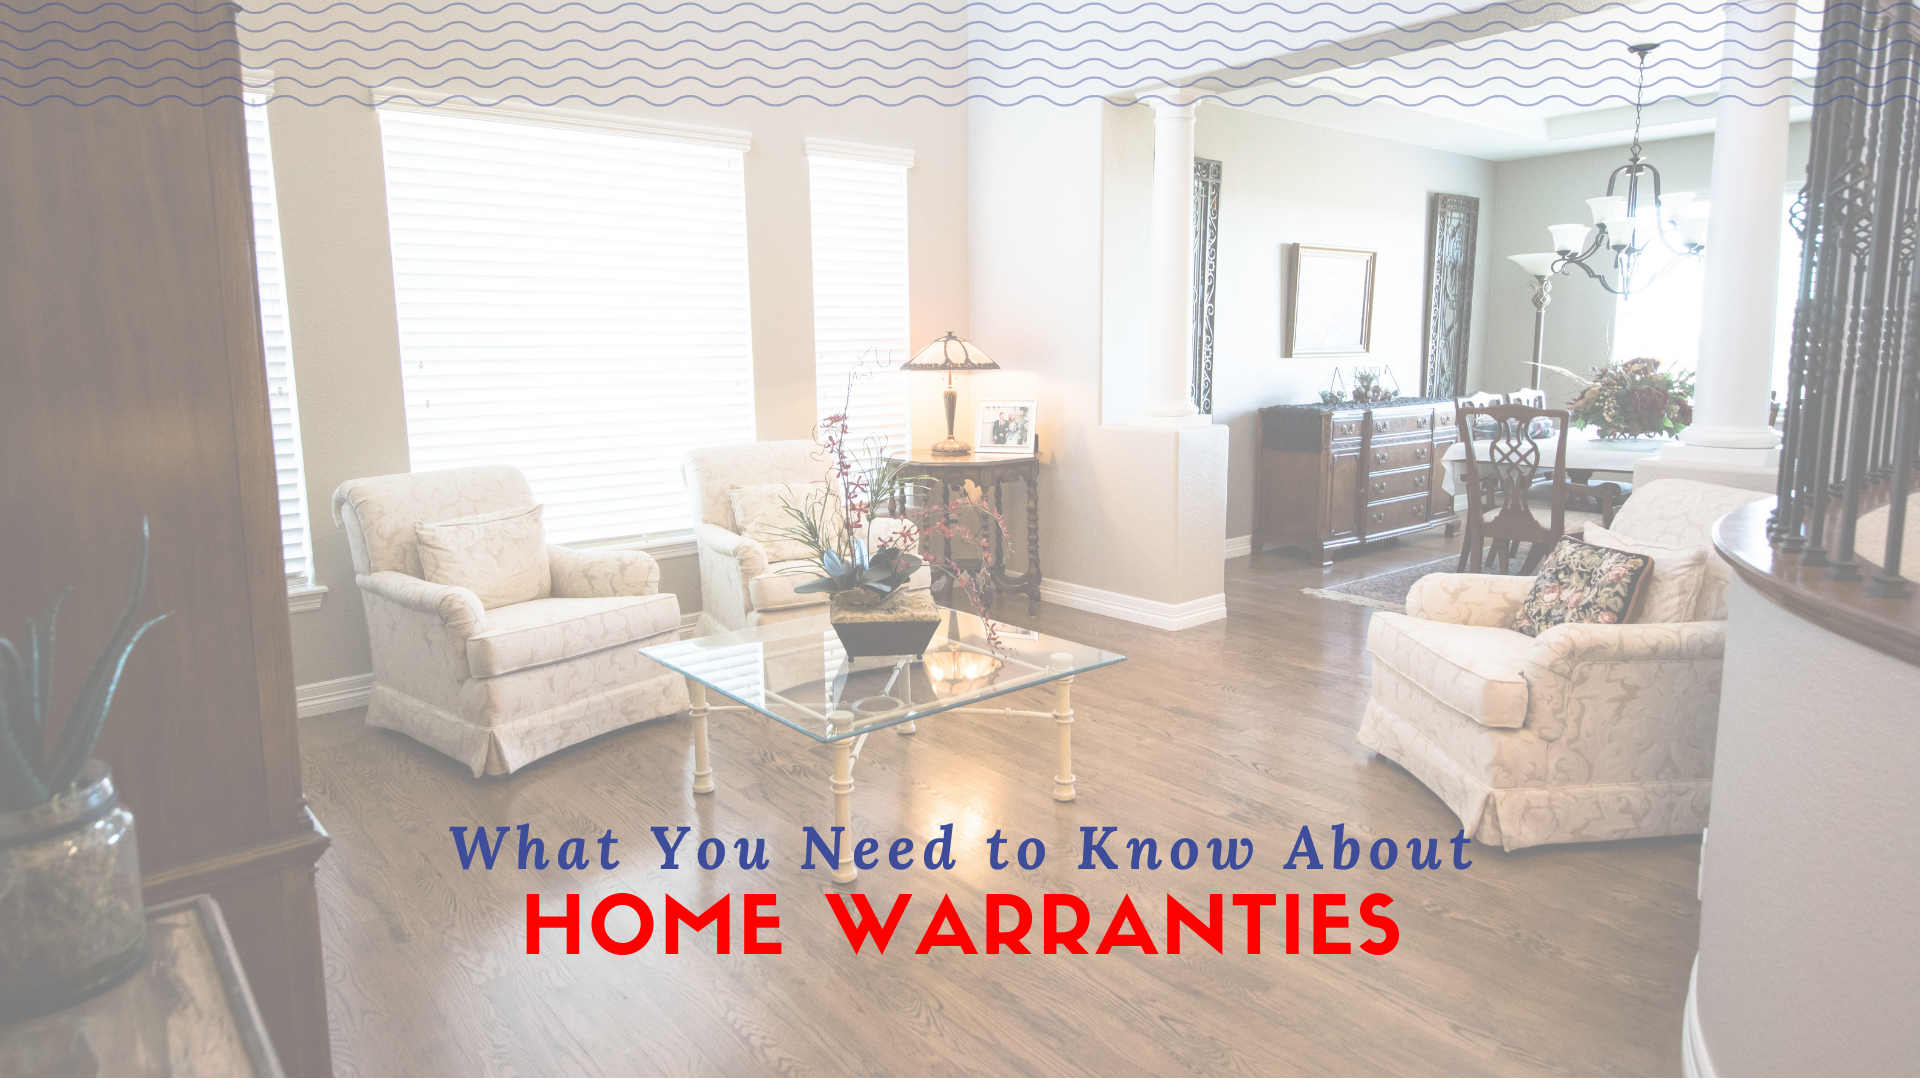 What You Need to Know About Home Warranties in Orlando, FL